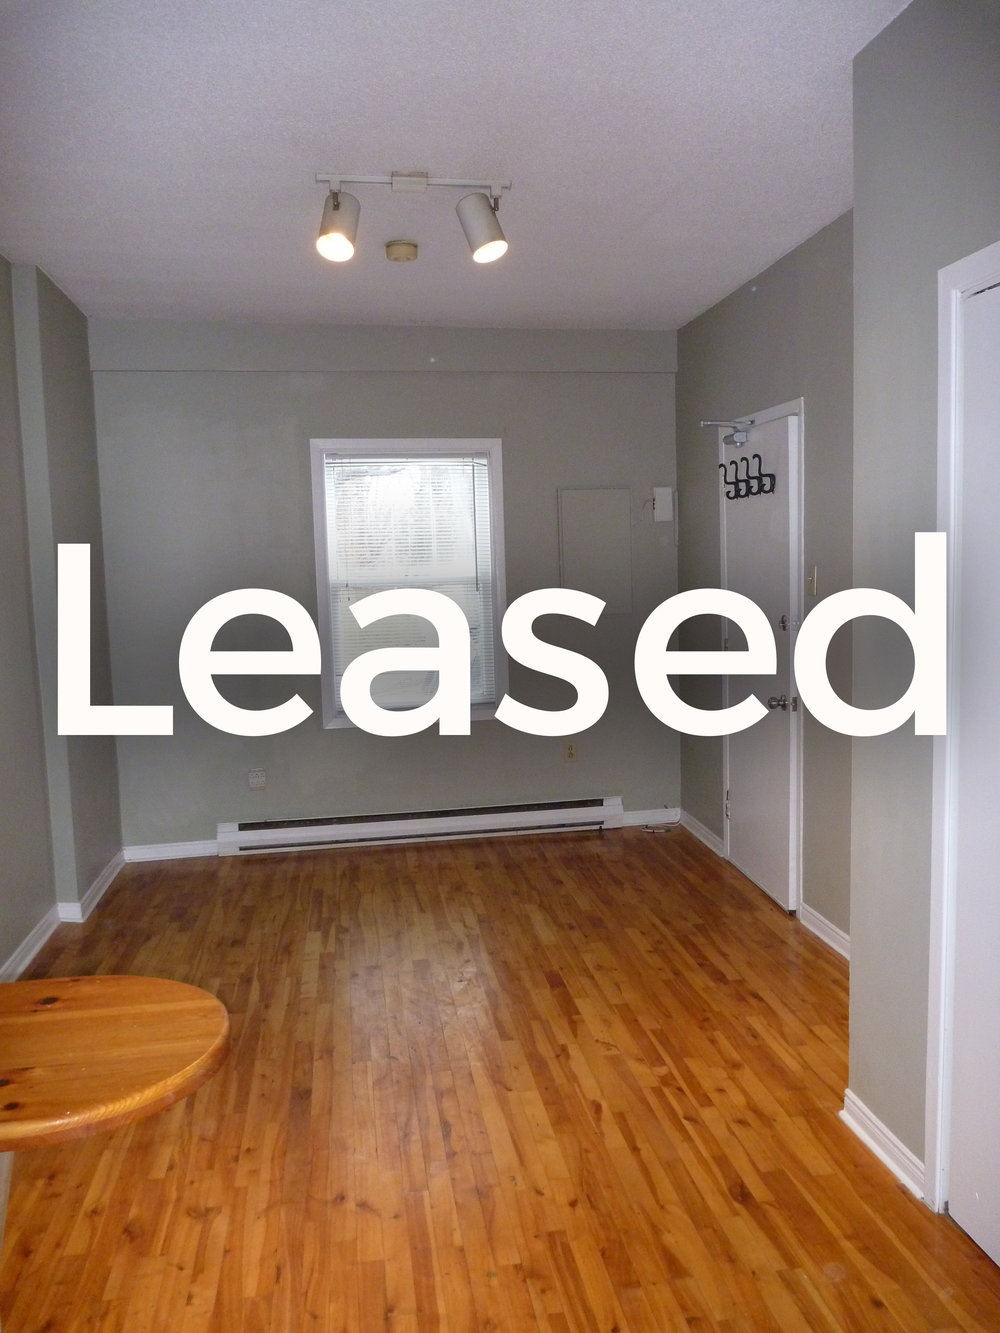 16 A Cathedral Street -  Leased.jpg